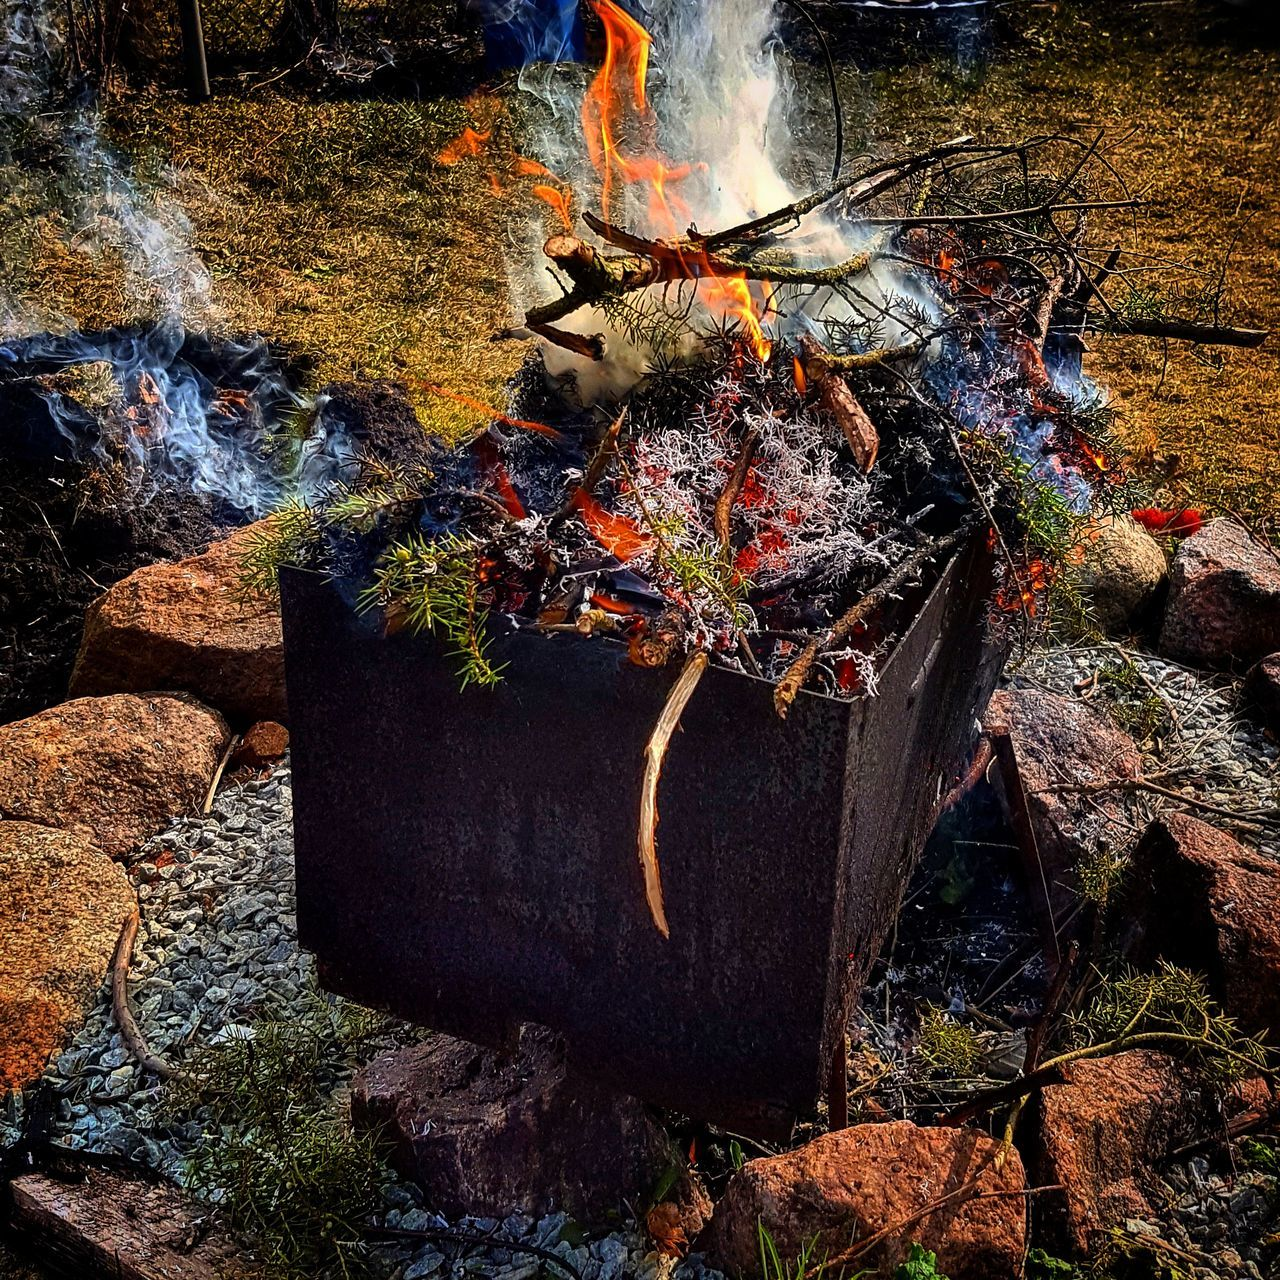 Fire Burning Wood Burning Branches Burning Wood Spring Colorful Nature Outdoor Camping